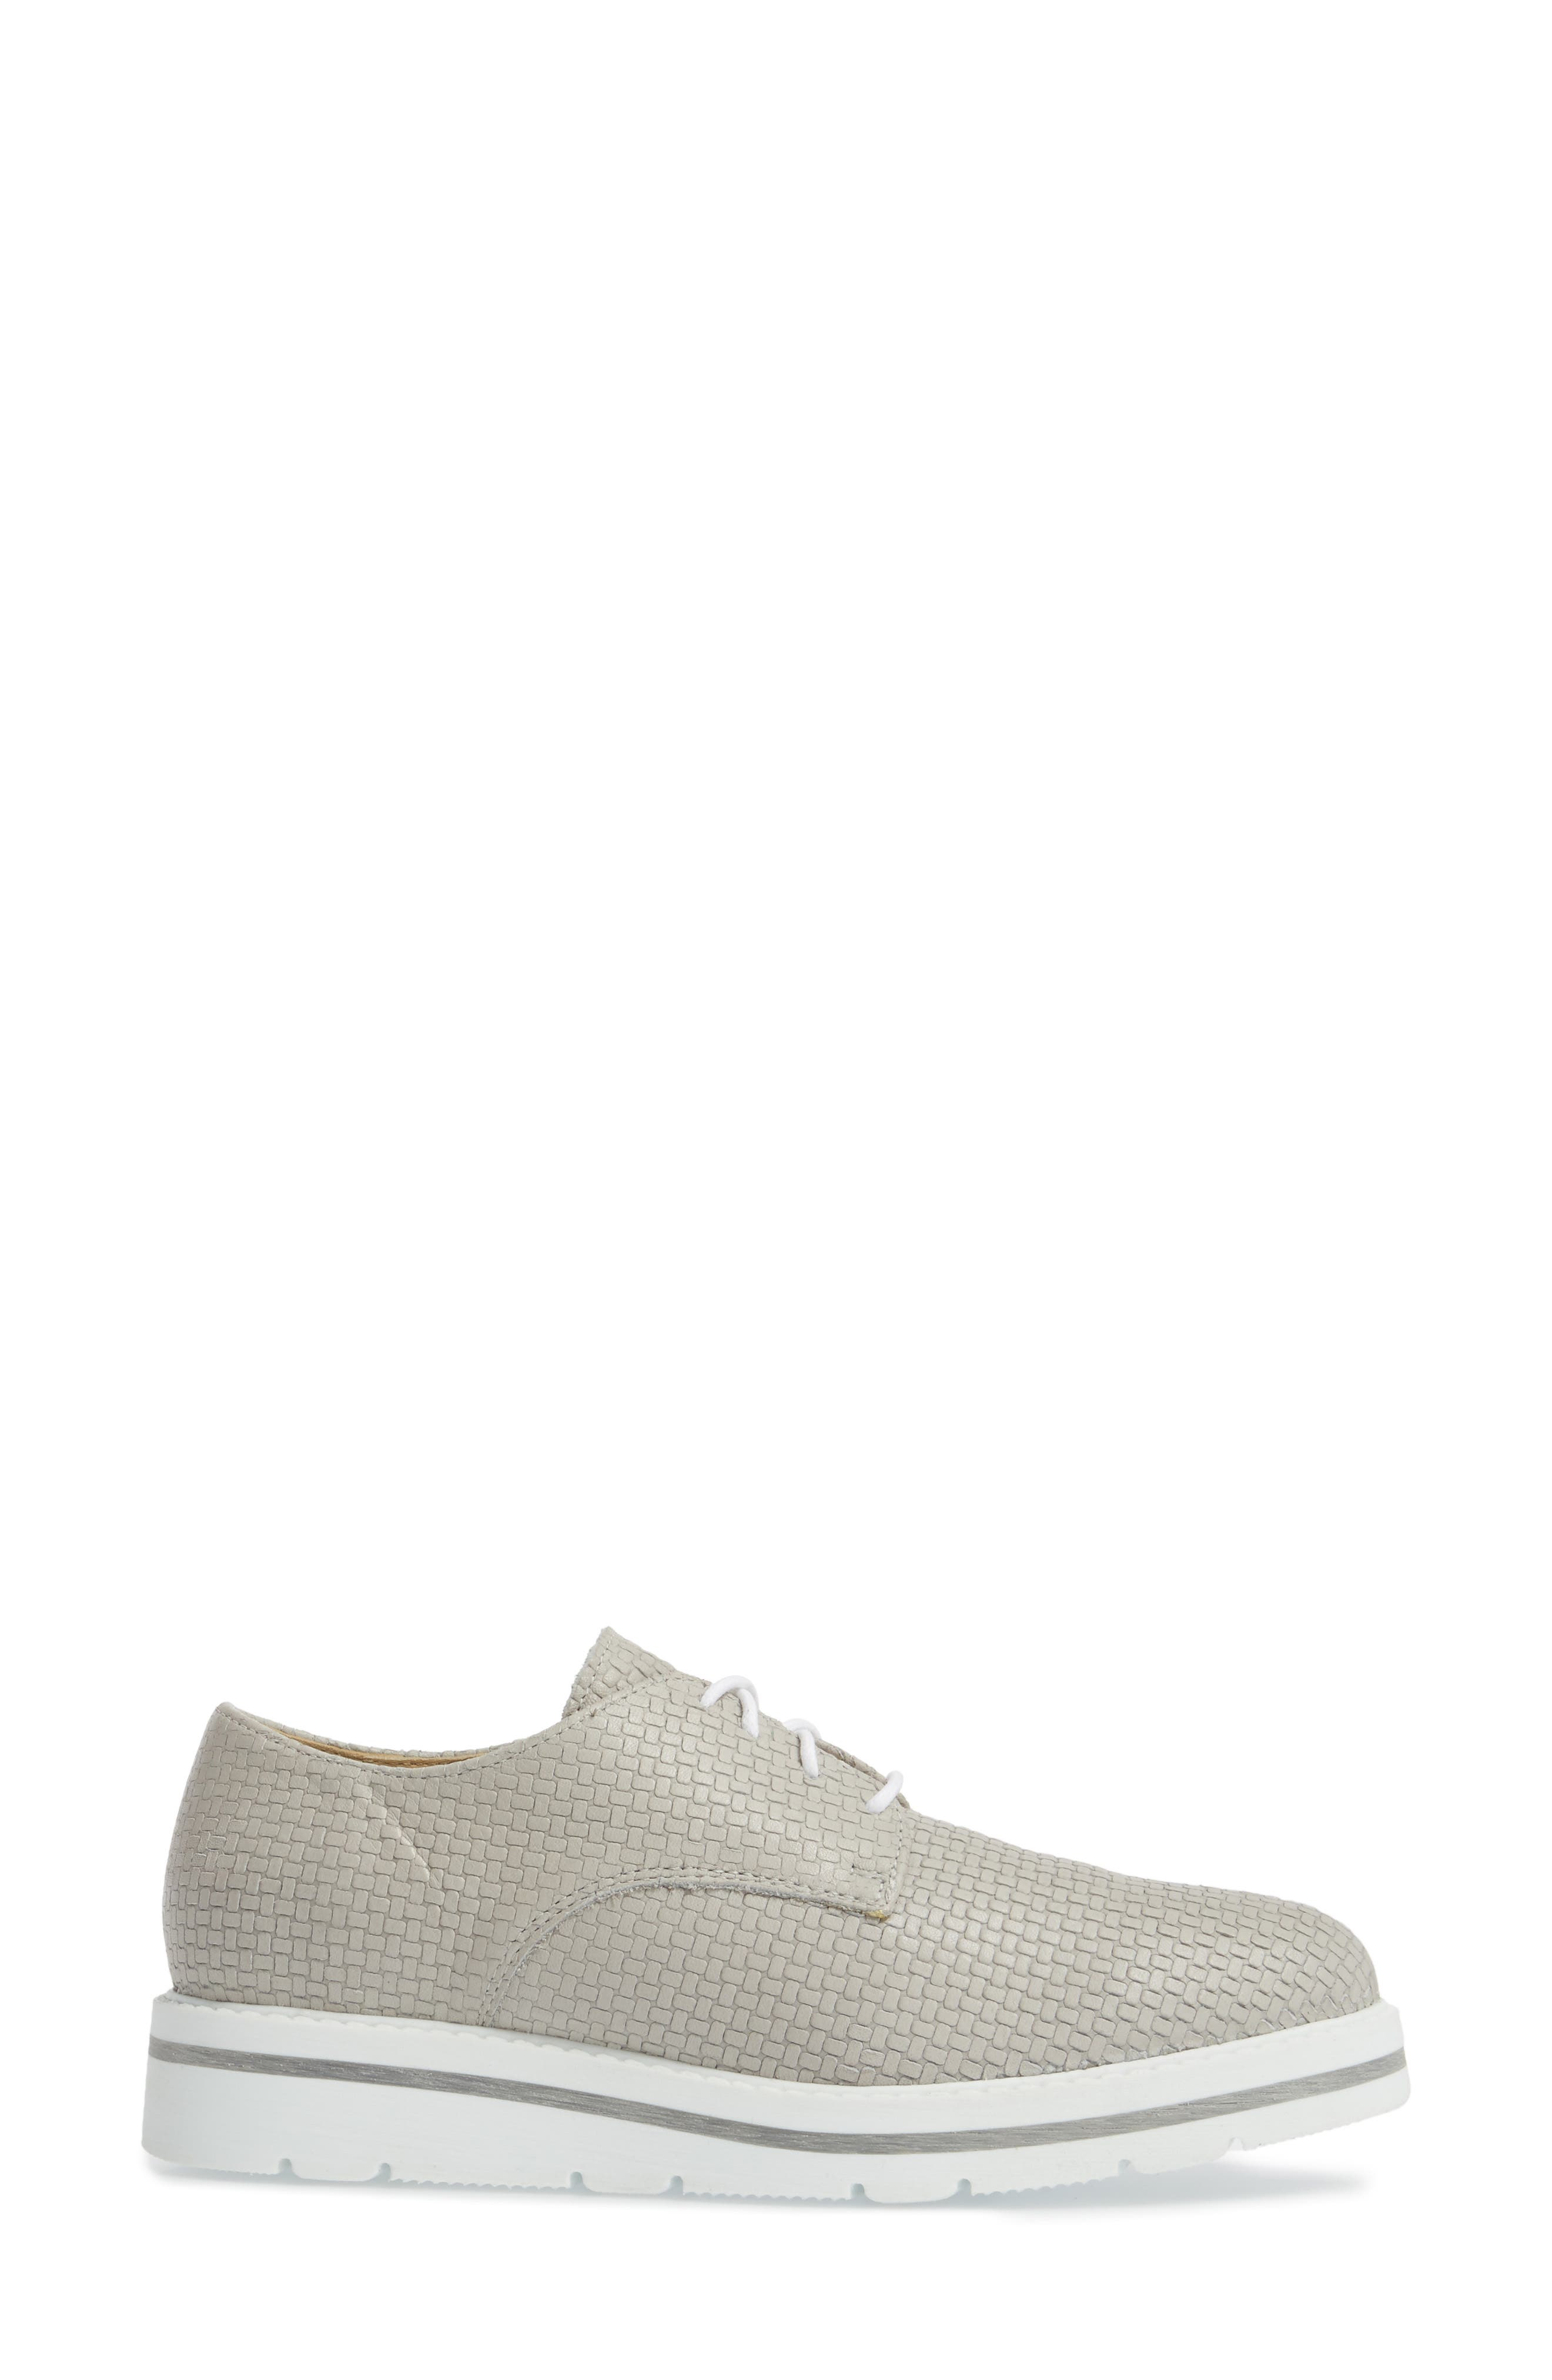 Lando Sneaker Derby,                             Alternate thumbnail 5, color,                             Light Grey Sauvage Leather